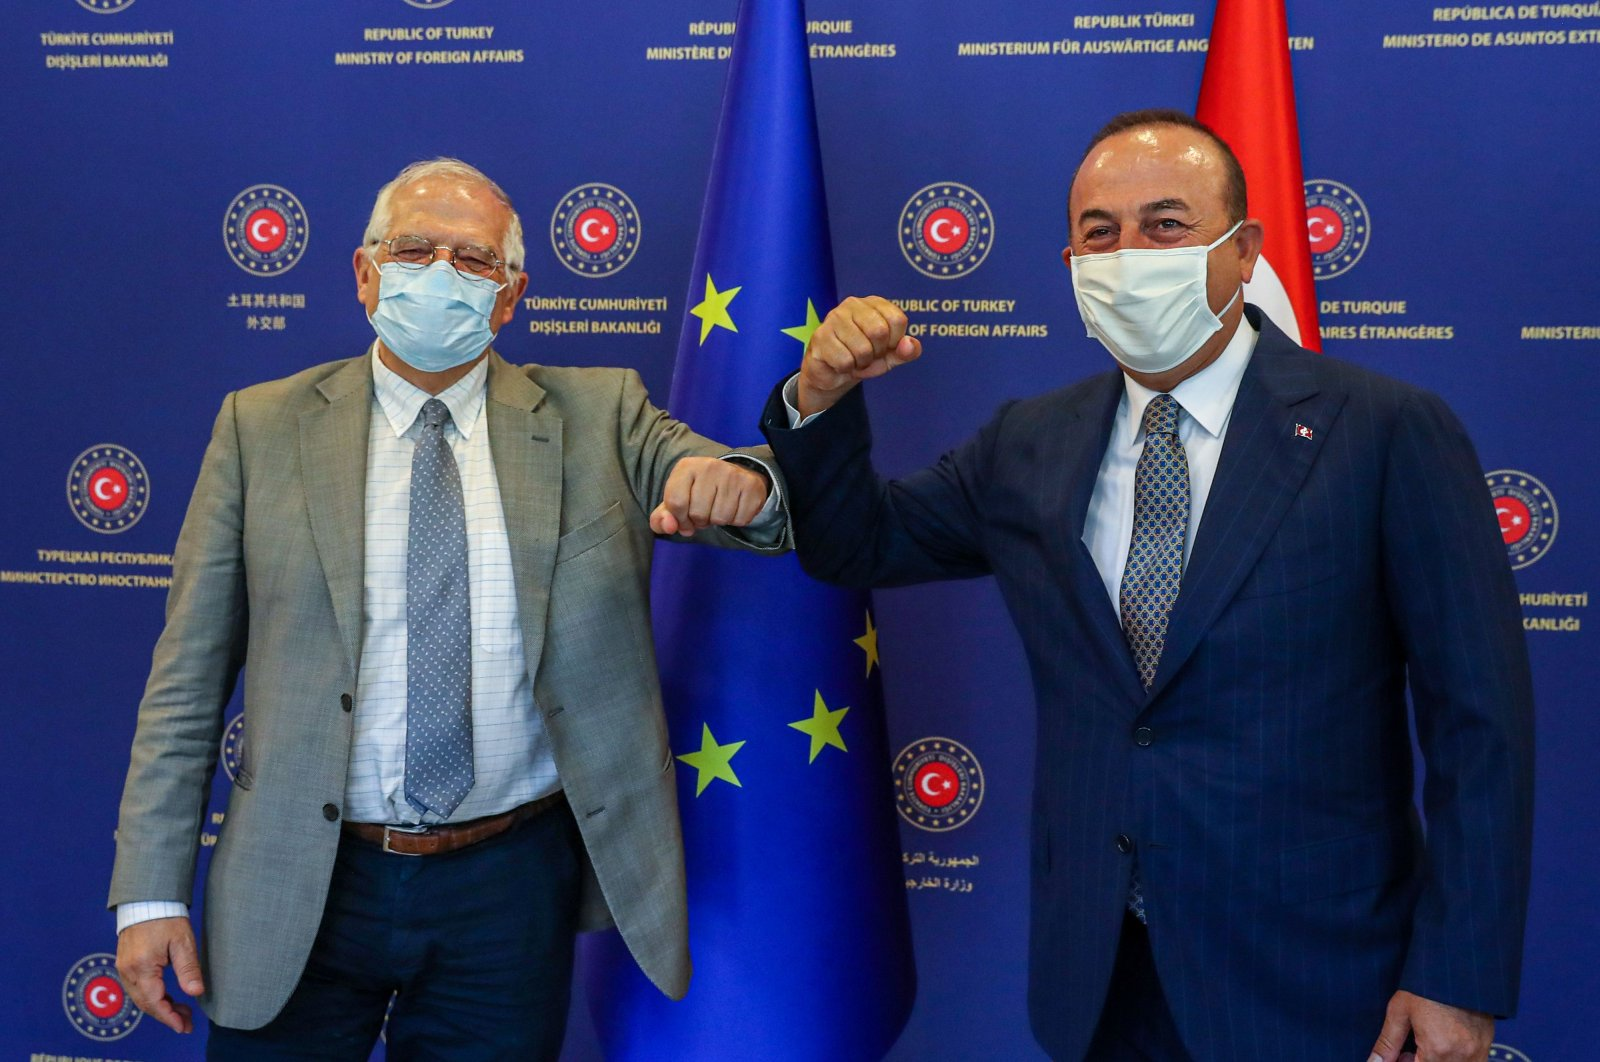 Foreign Minister Mevlüt Çavuşoğlu (R) and High Representative of the European Union for Foreign Affairs and Security Policy, Josep Borrell (L) pose for a photo before their meeting in Ankara, July 6, 2020. (AFP Photo)